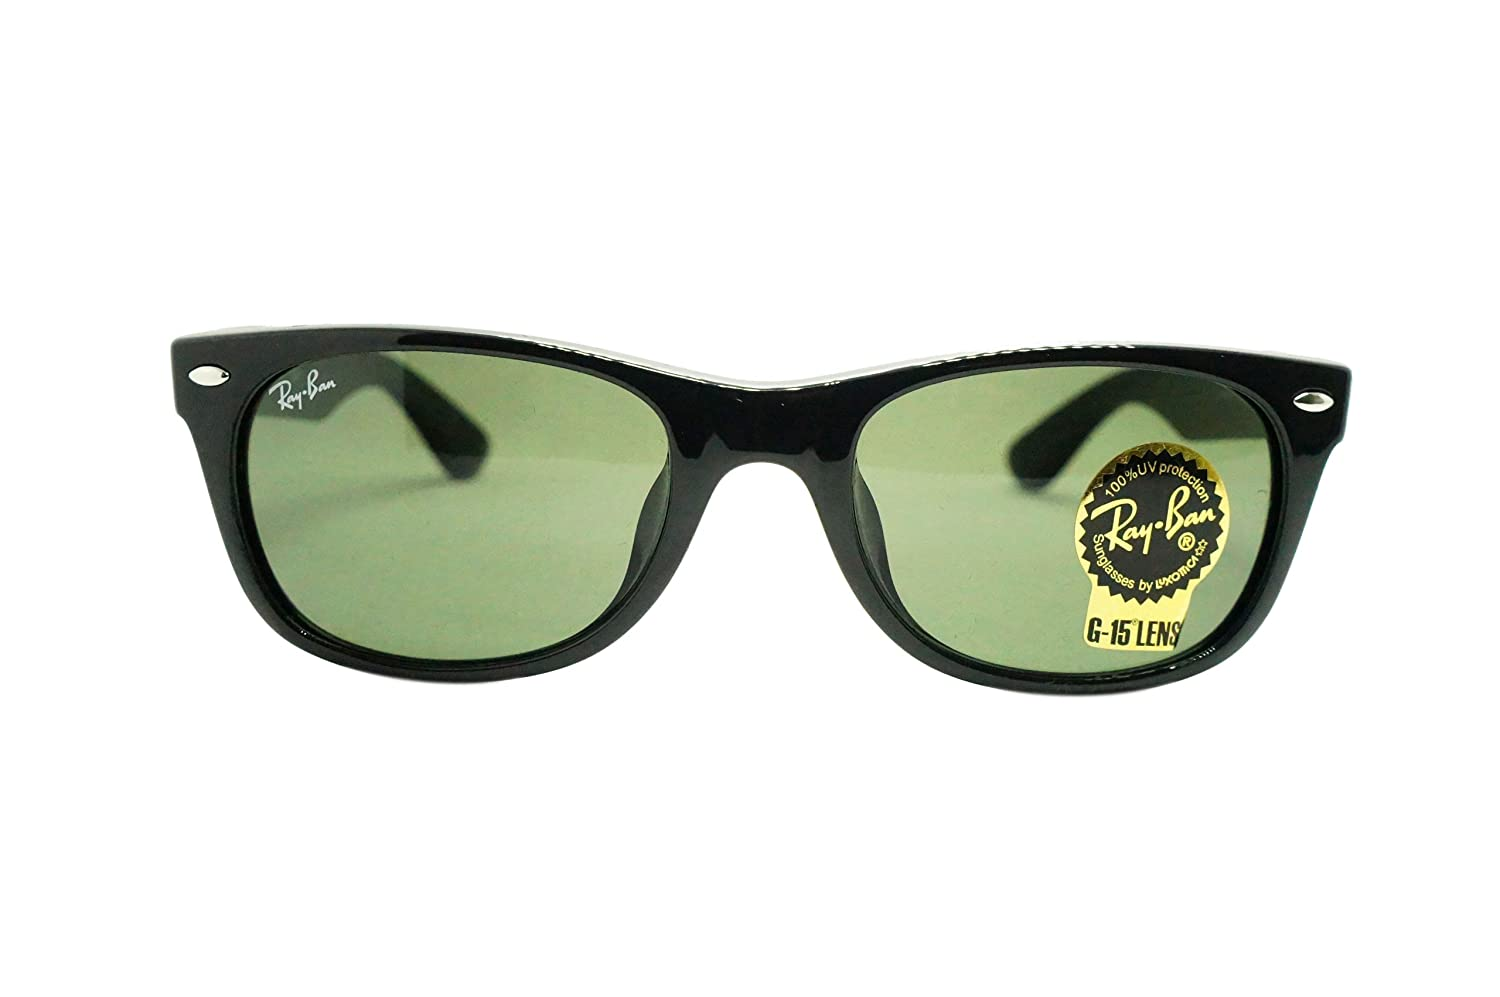 ad12668ec6 Amazon.com  Ray-Ban Men s New Wayfarer (f) Square Sunglasses BLACK 52.0 mm   Ray-Ban  Clothing